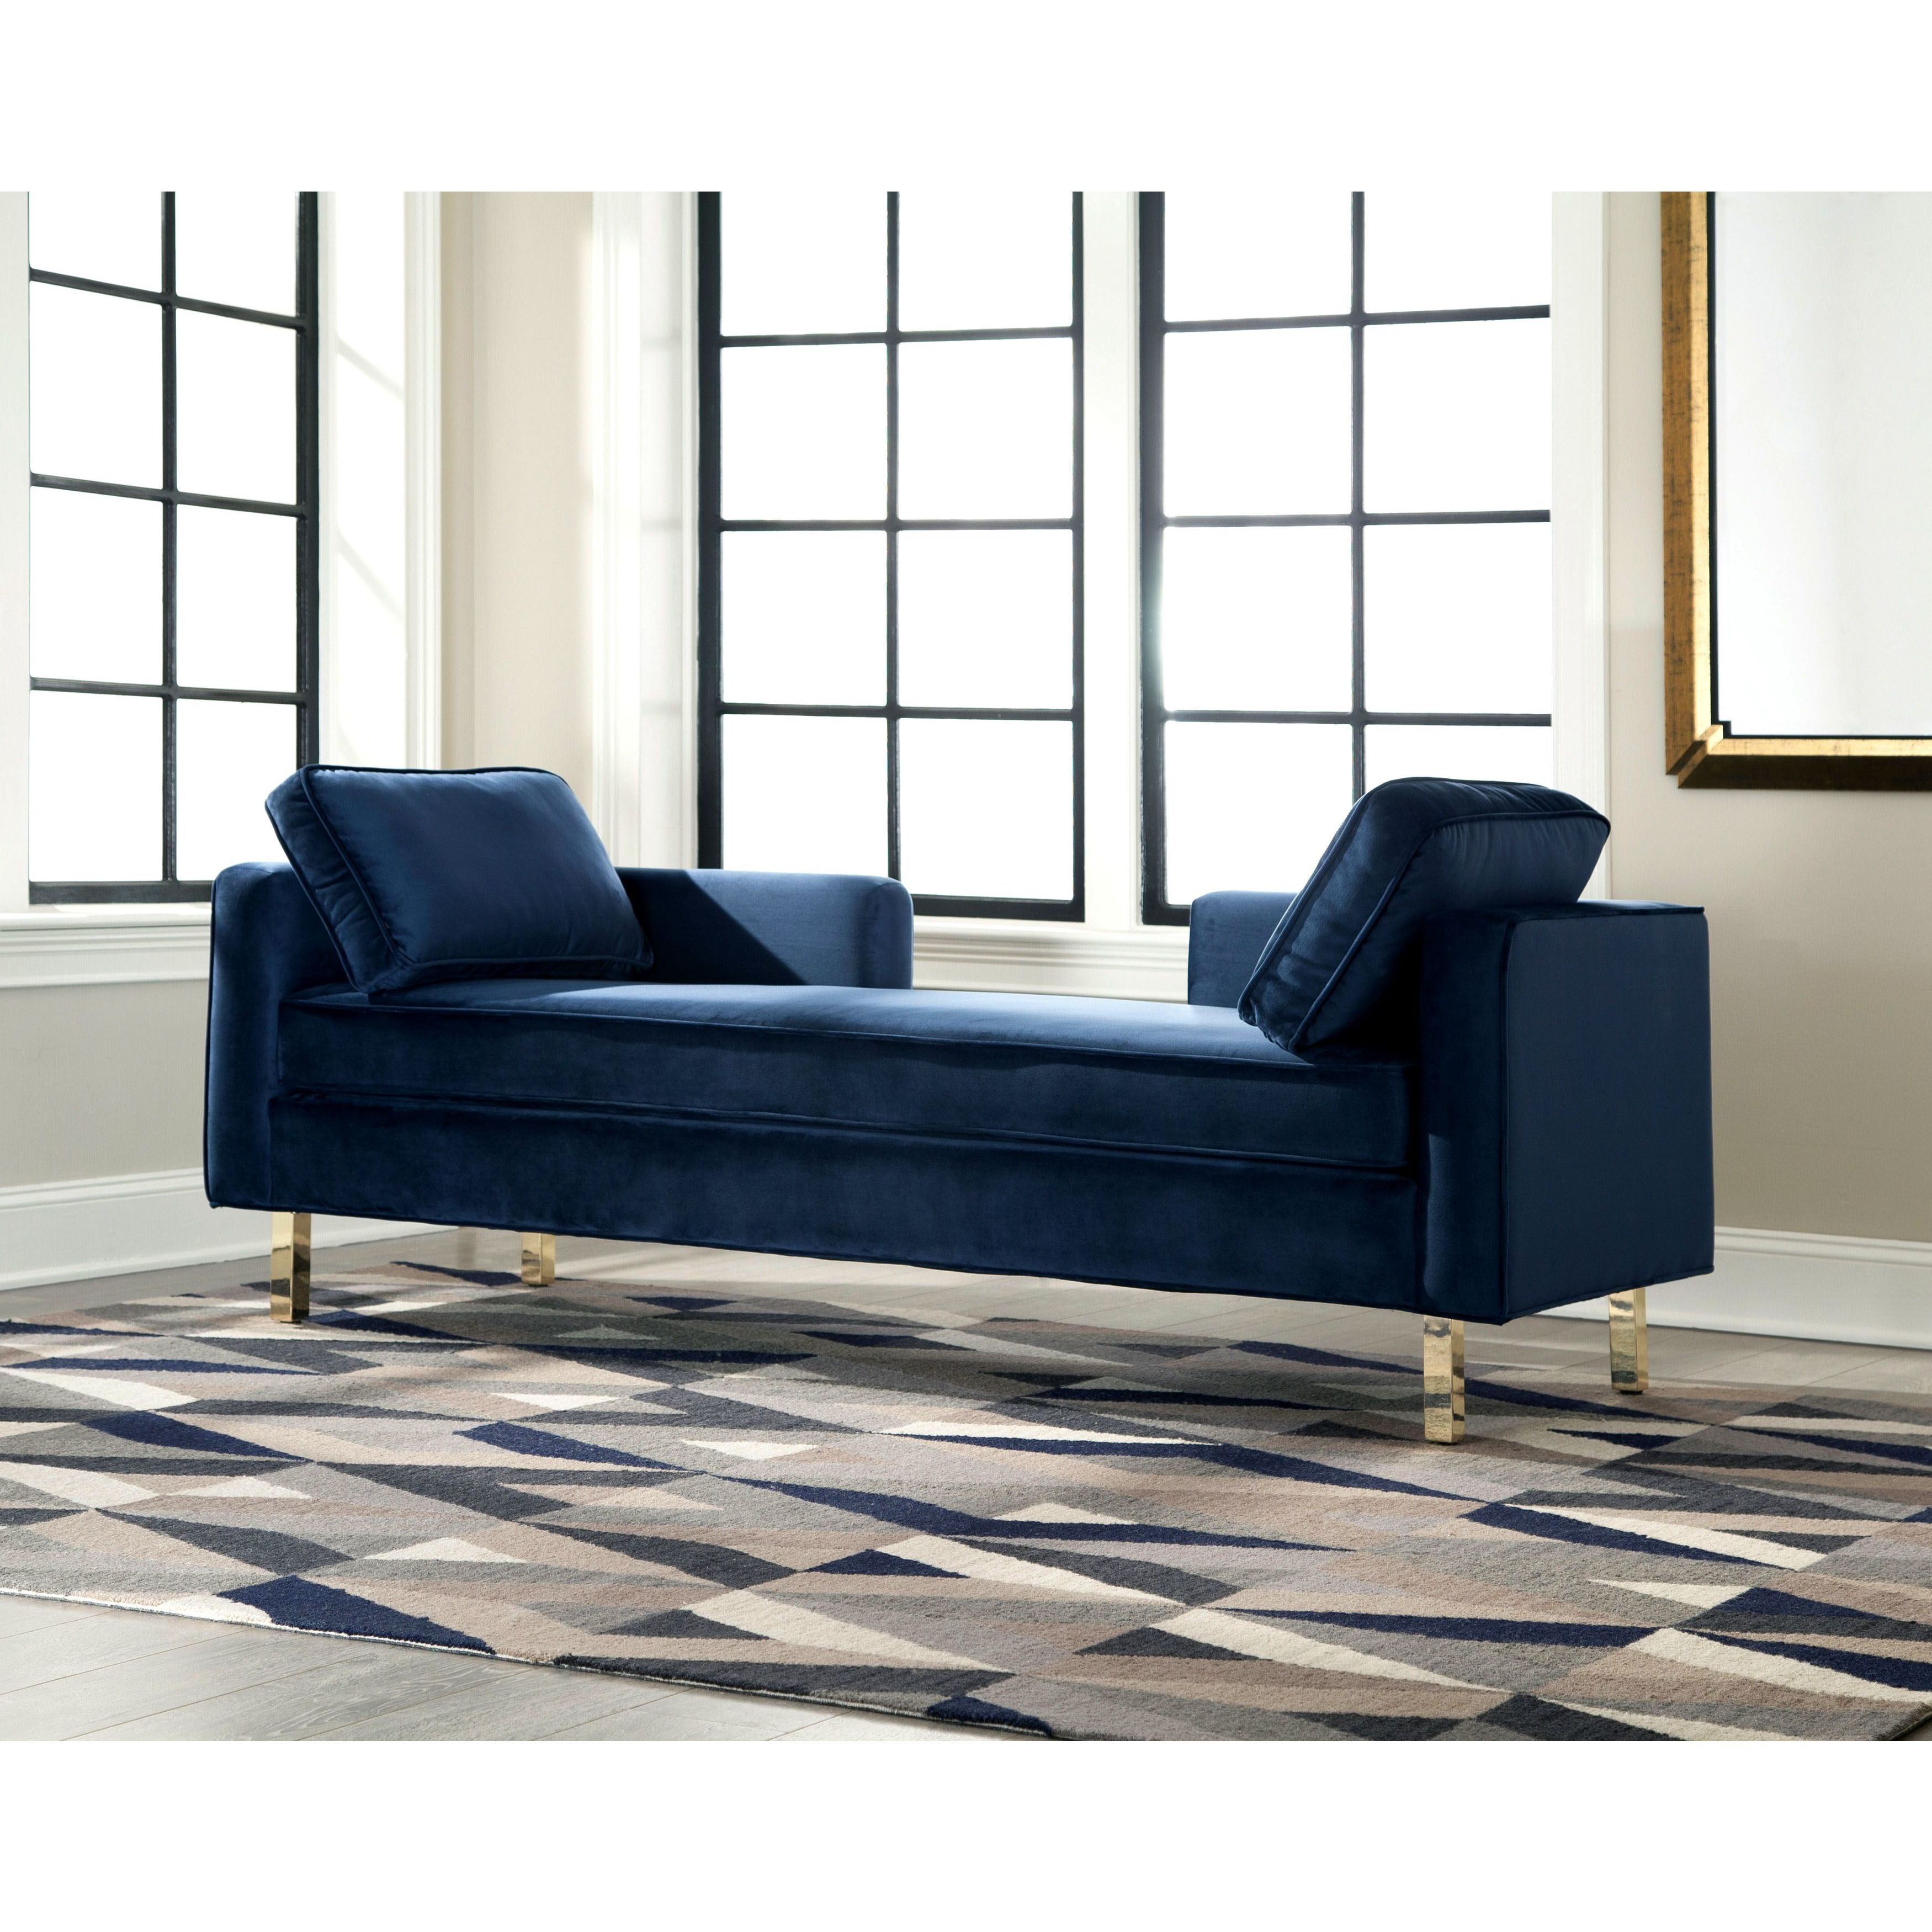 Shop Modern Design Navy Accent Double Chaise Sofa - Free Shipping ...